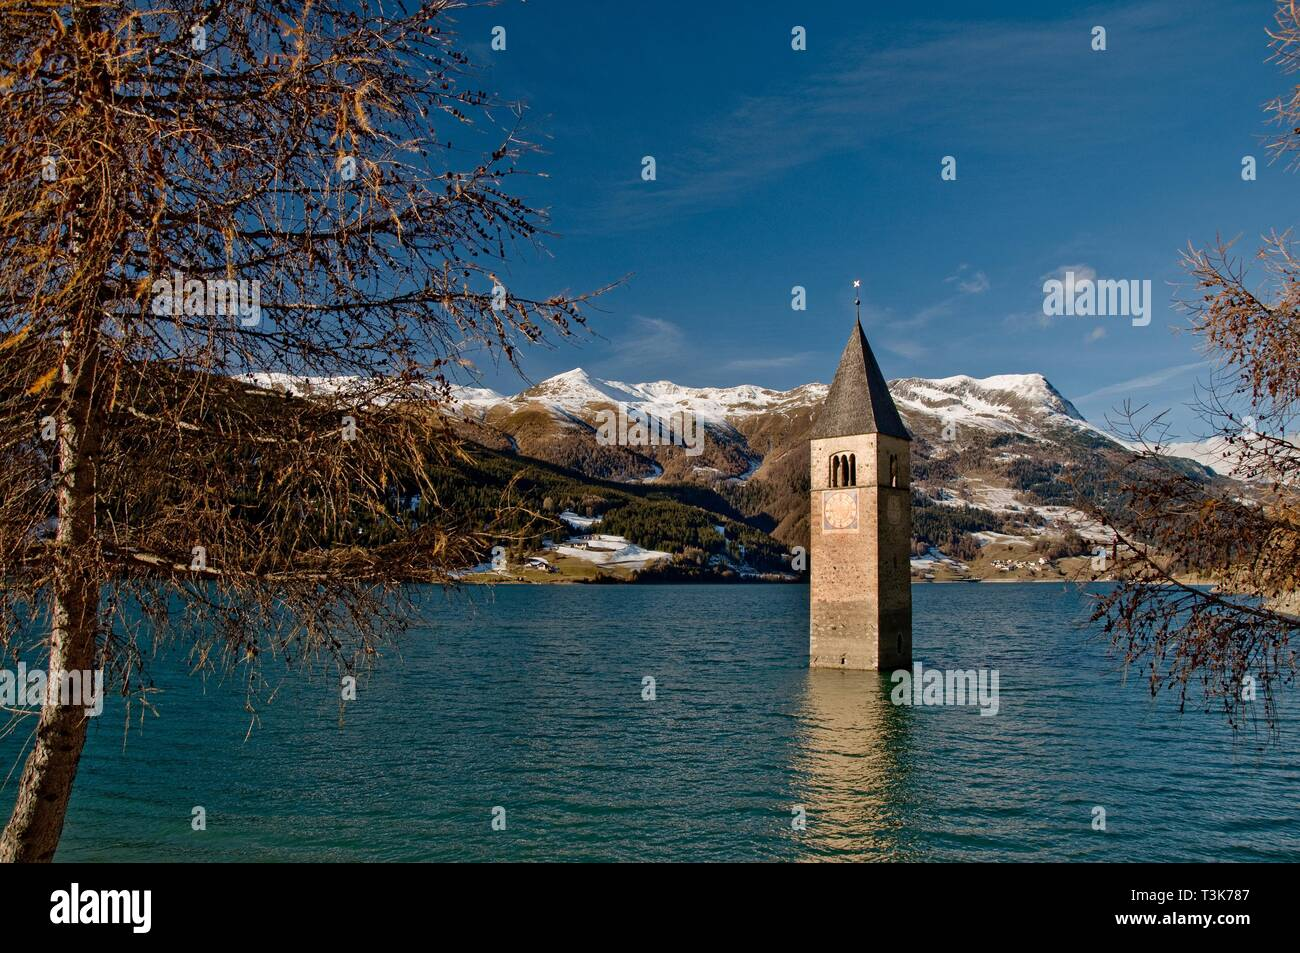 Church tower of the former parish church Sankt Katahrina of Graun in the Reschensee, in the background the Piz Lad, Vinschgau, South Tyrol, Italy - Stock Image